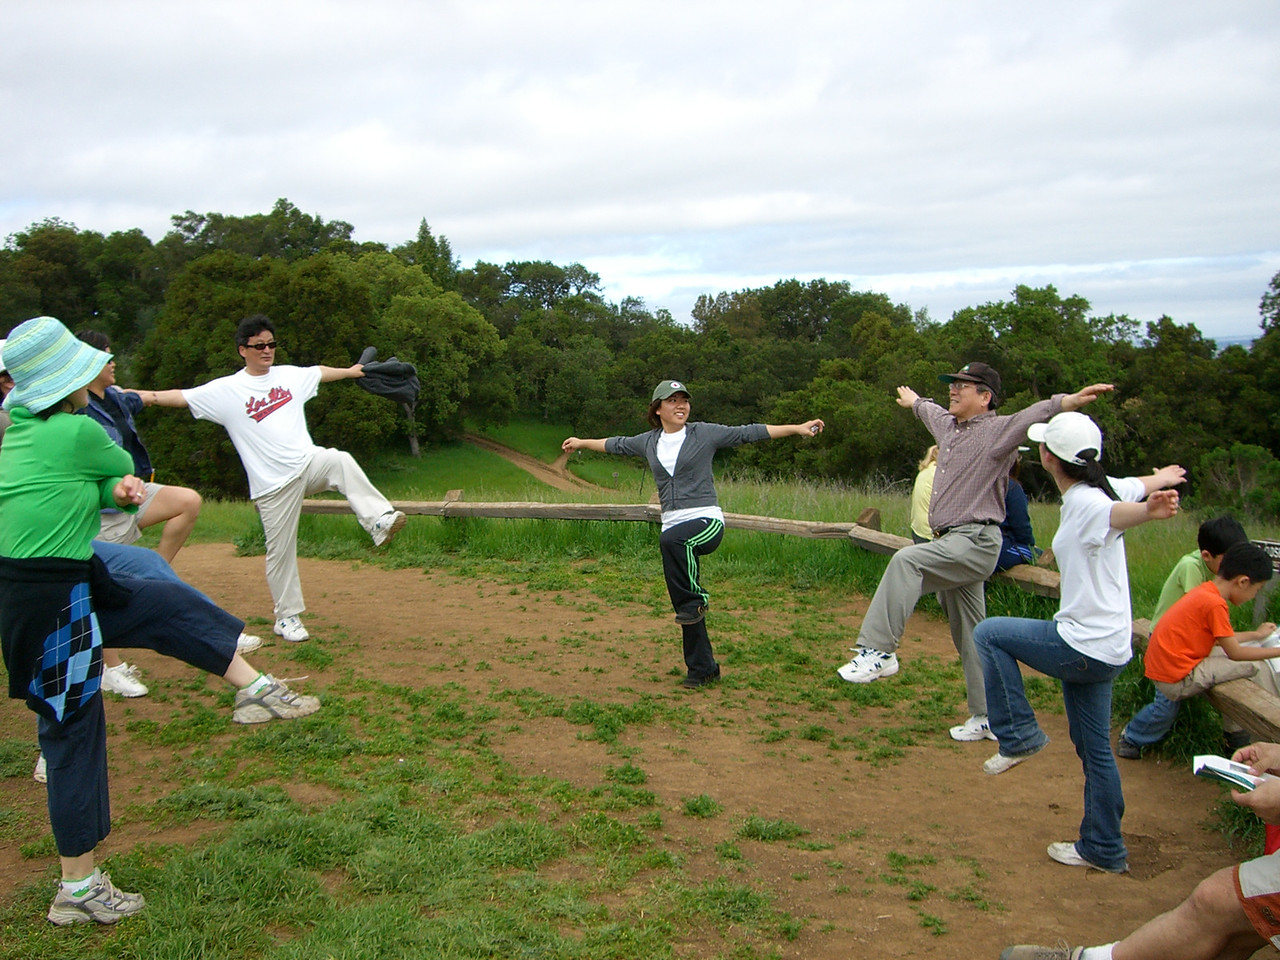 2006 04 29 Sat - CCSV hike - Baxon Kim leads Asian exercises 2